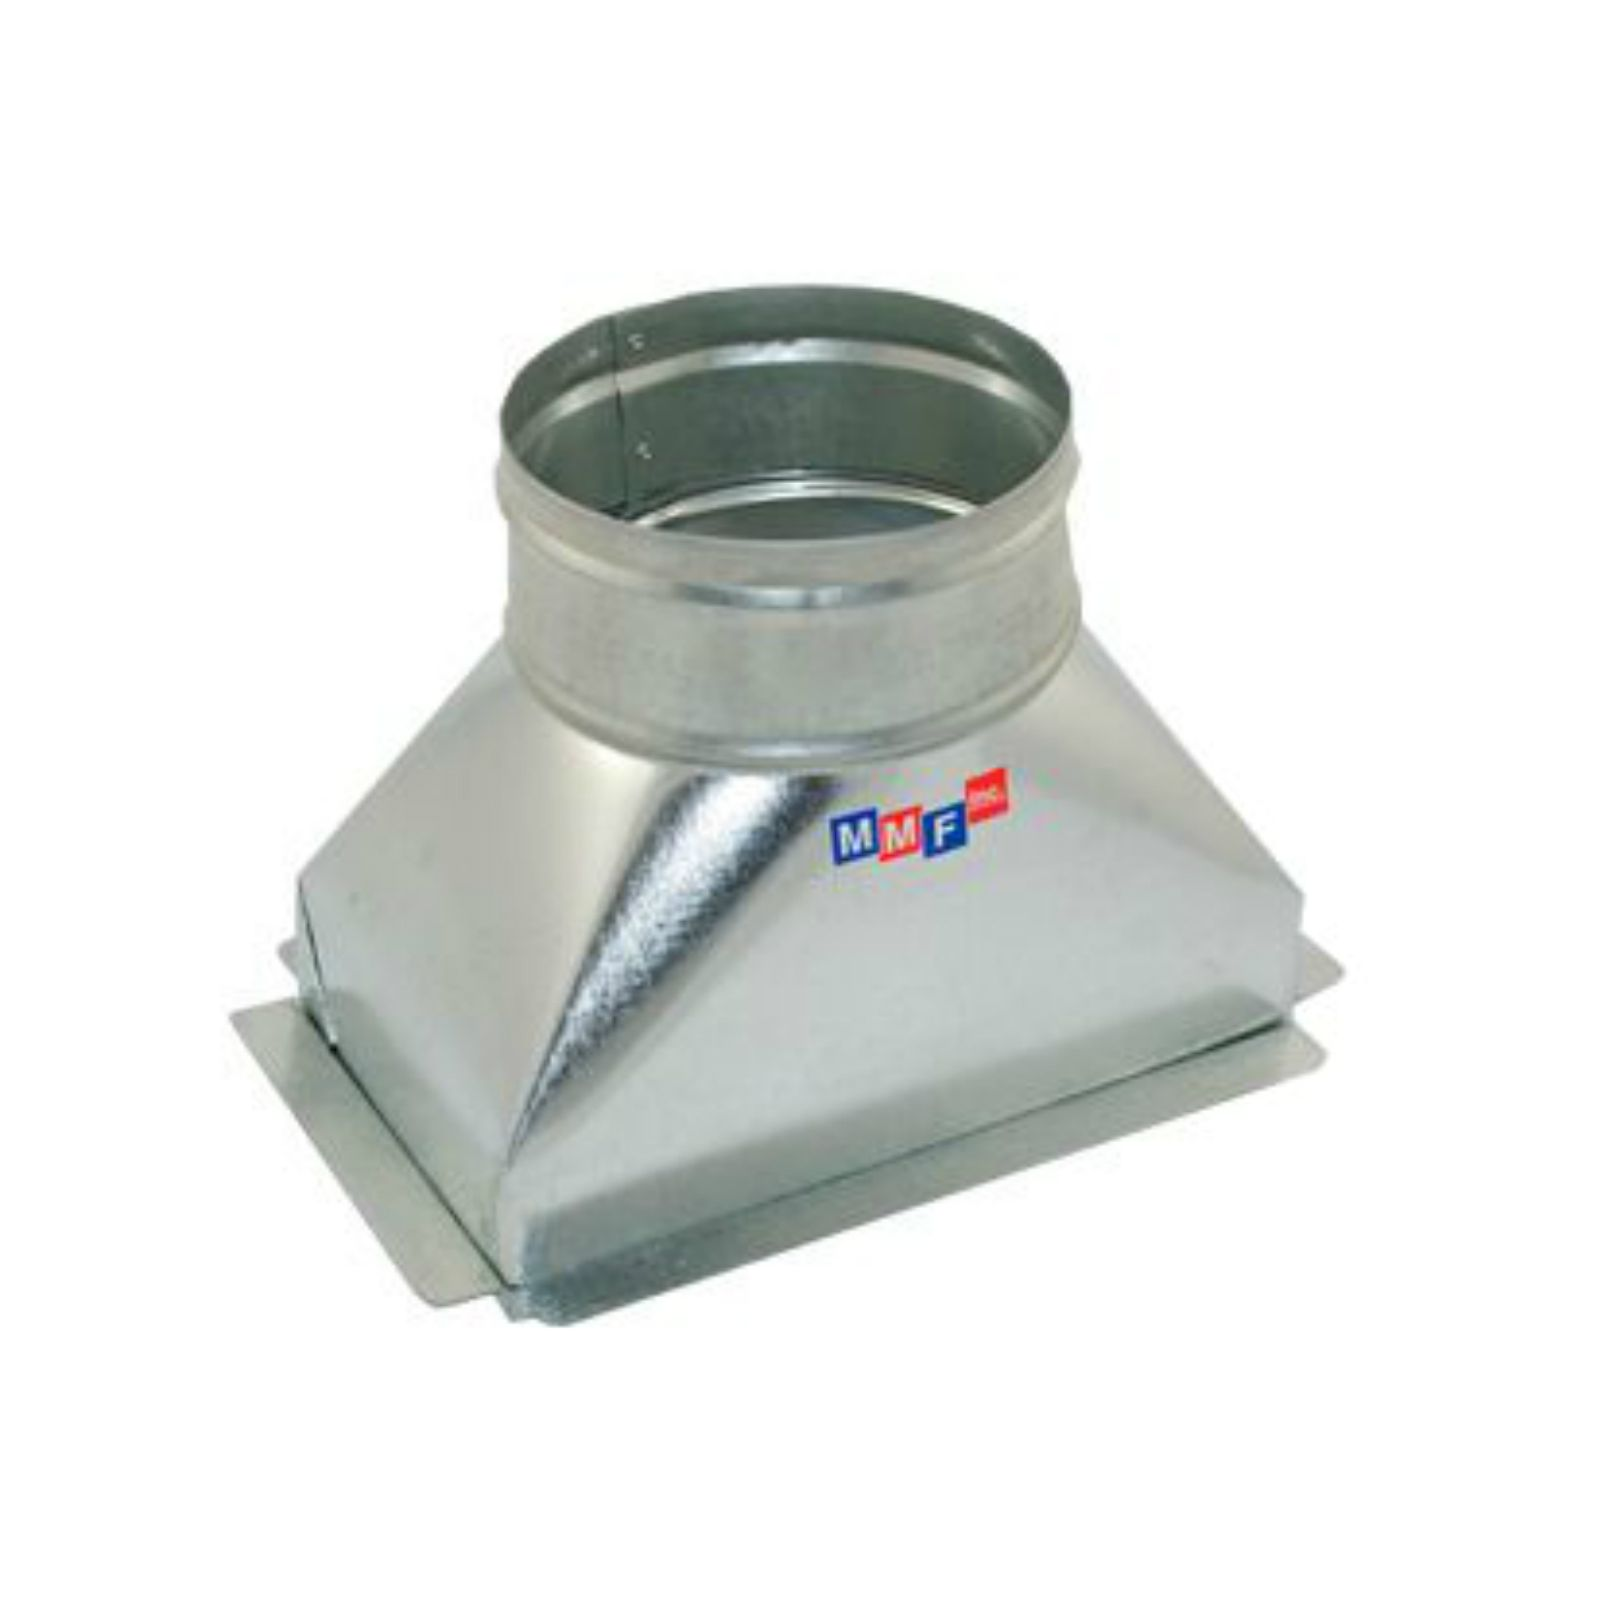 "Modular Metal BTSFI141010P - Sealed Floor Box - 26 Gauge - With Plaster Ground Flange 14"" X 10"" To 10"" Round"